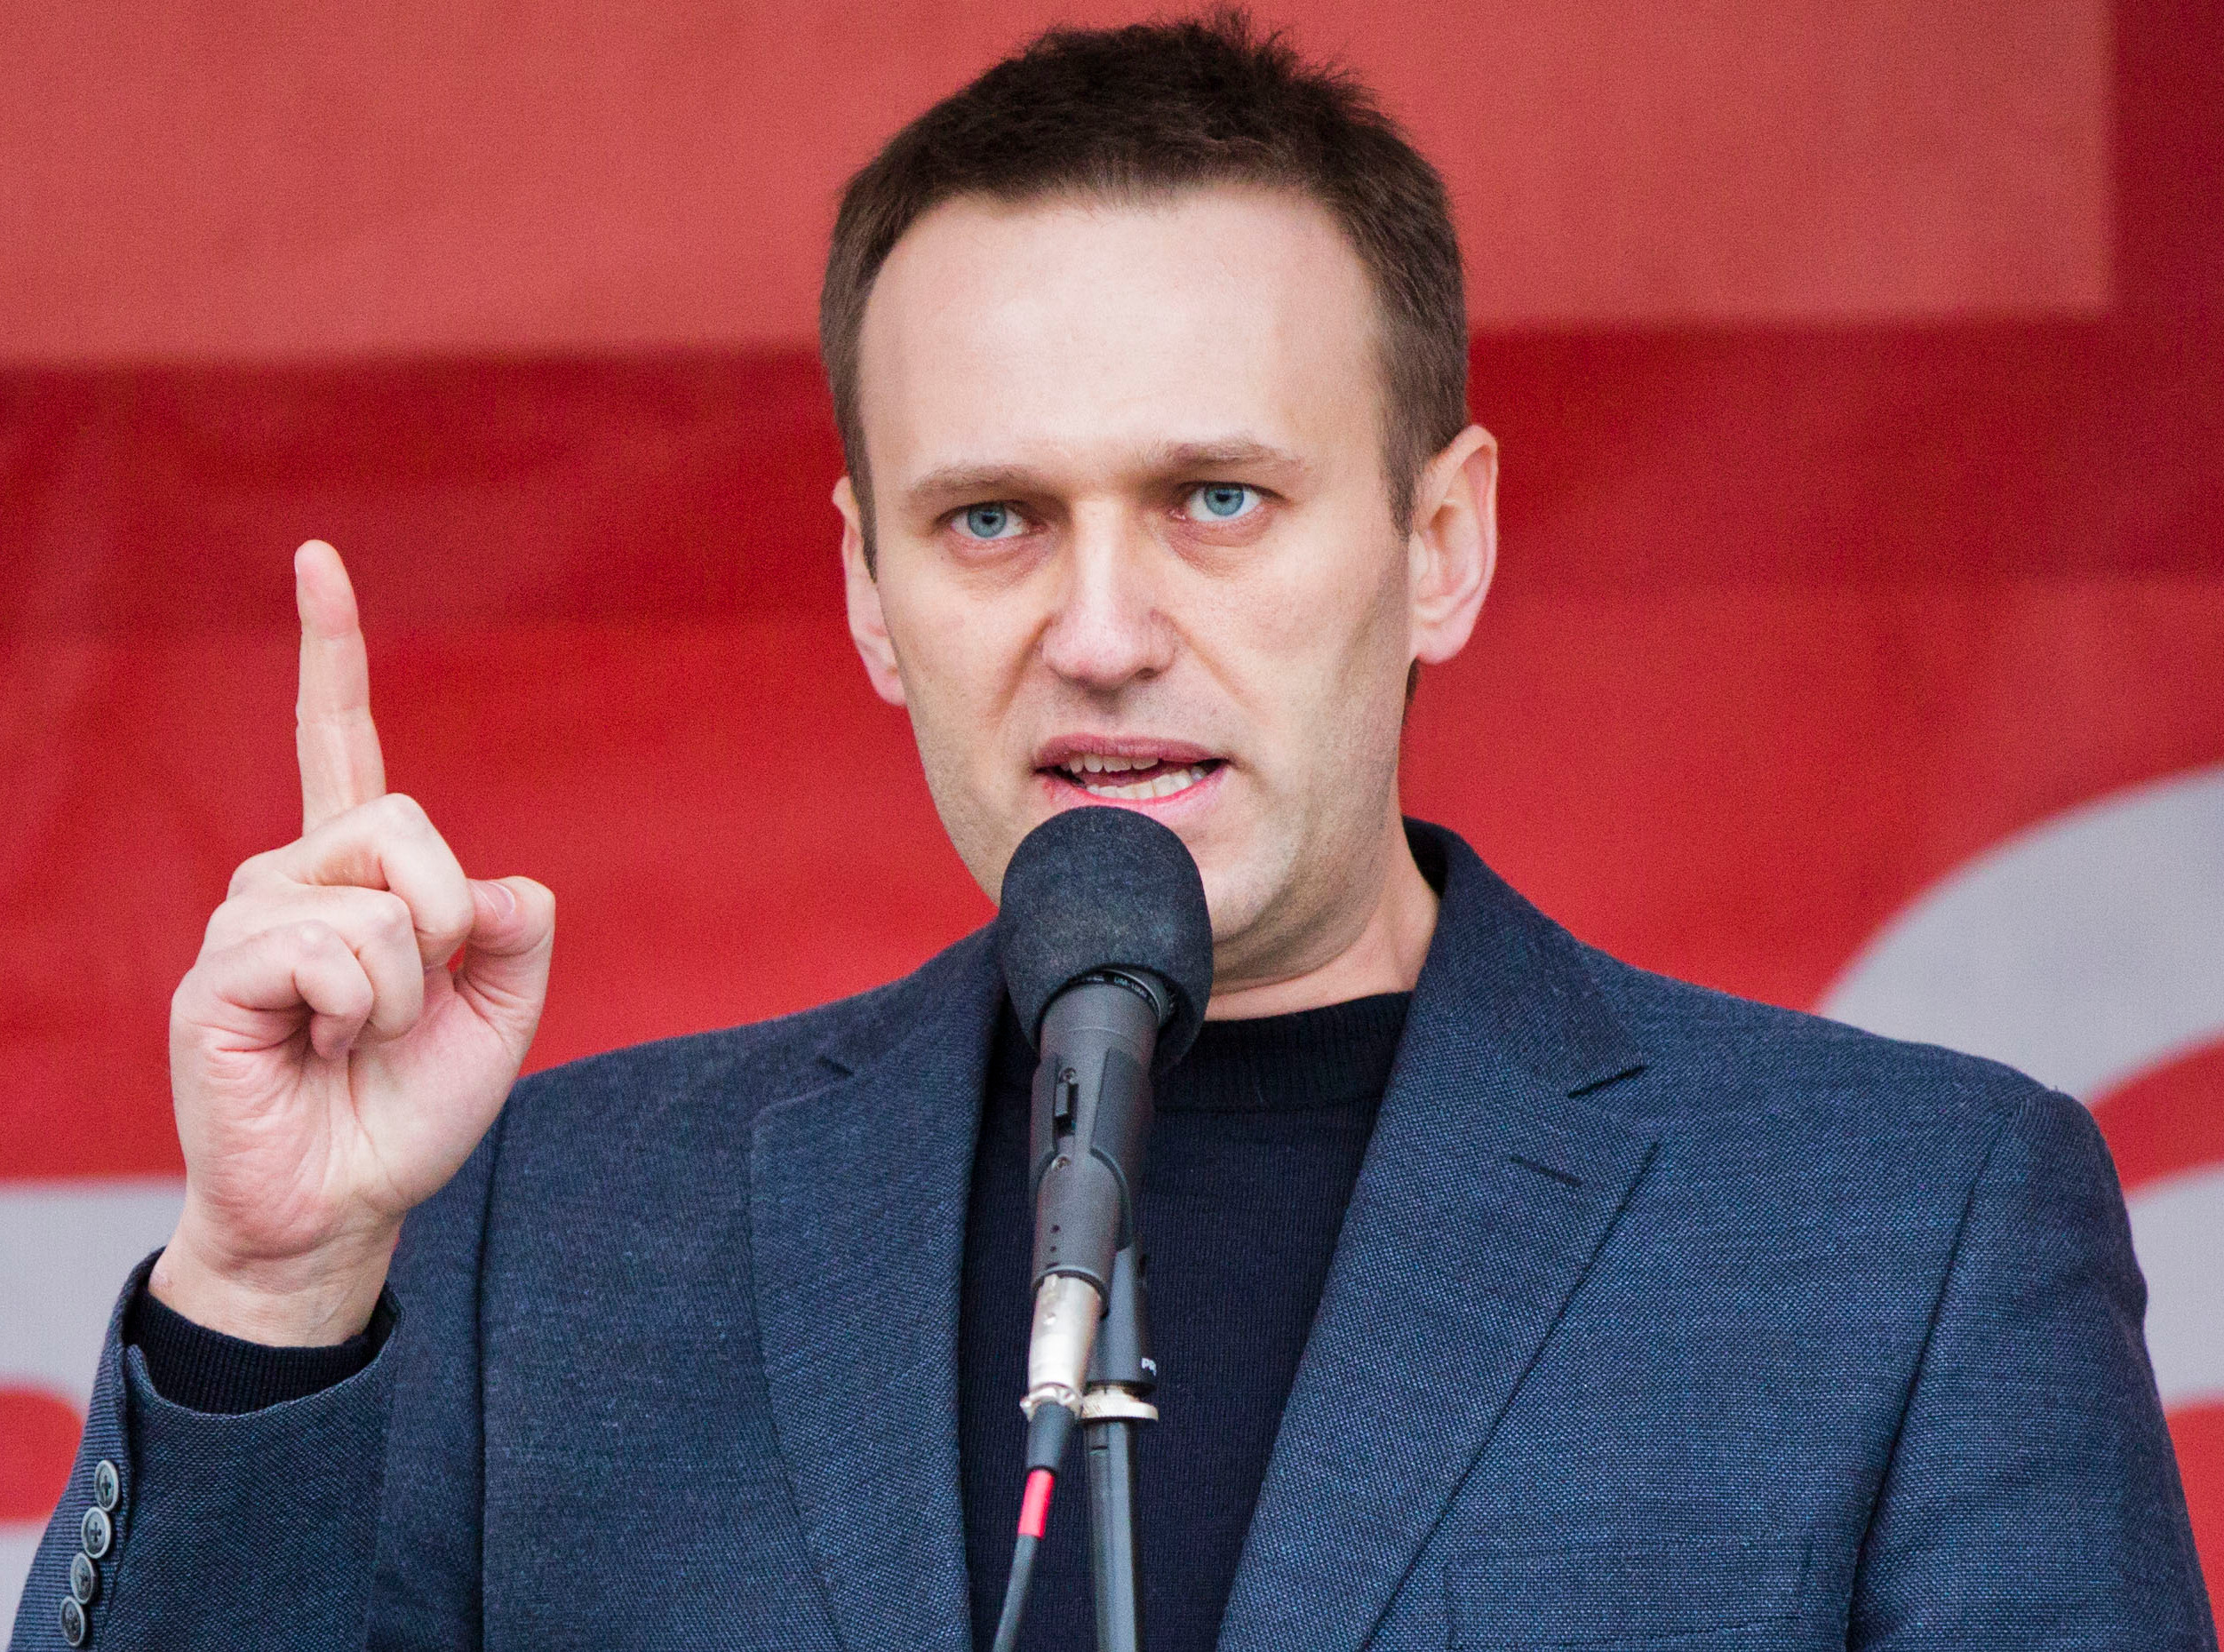 Alexei Navalny Poisoned: Supporters Are Saying It Is a Controversy